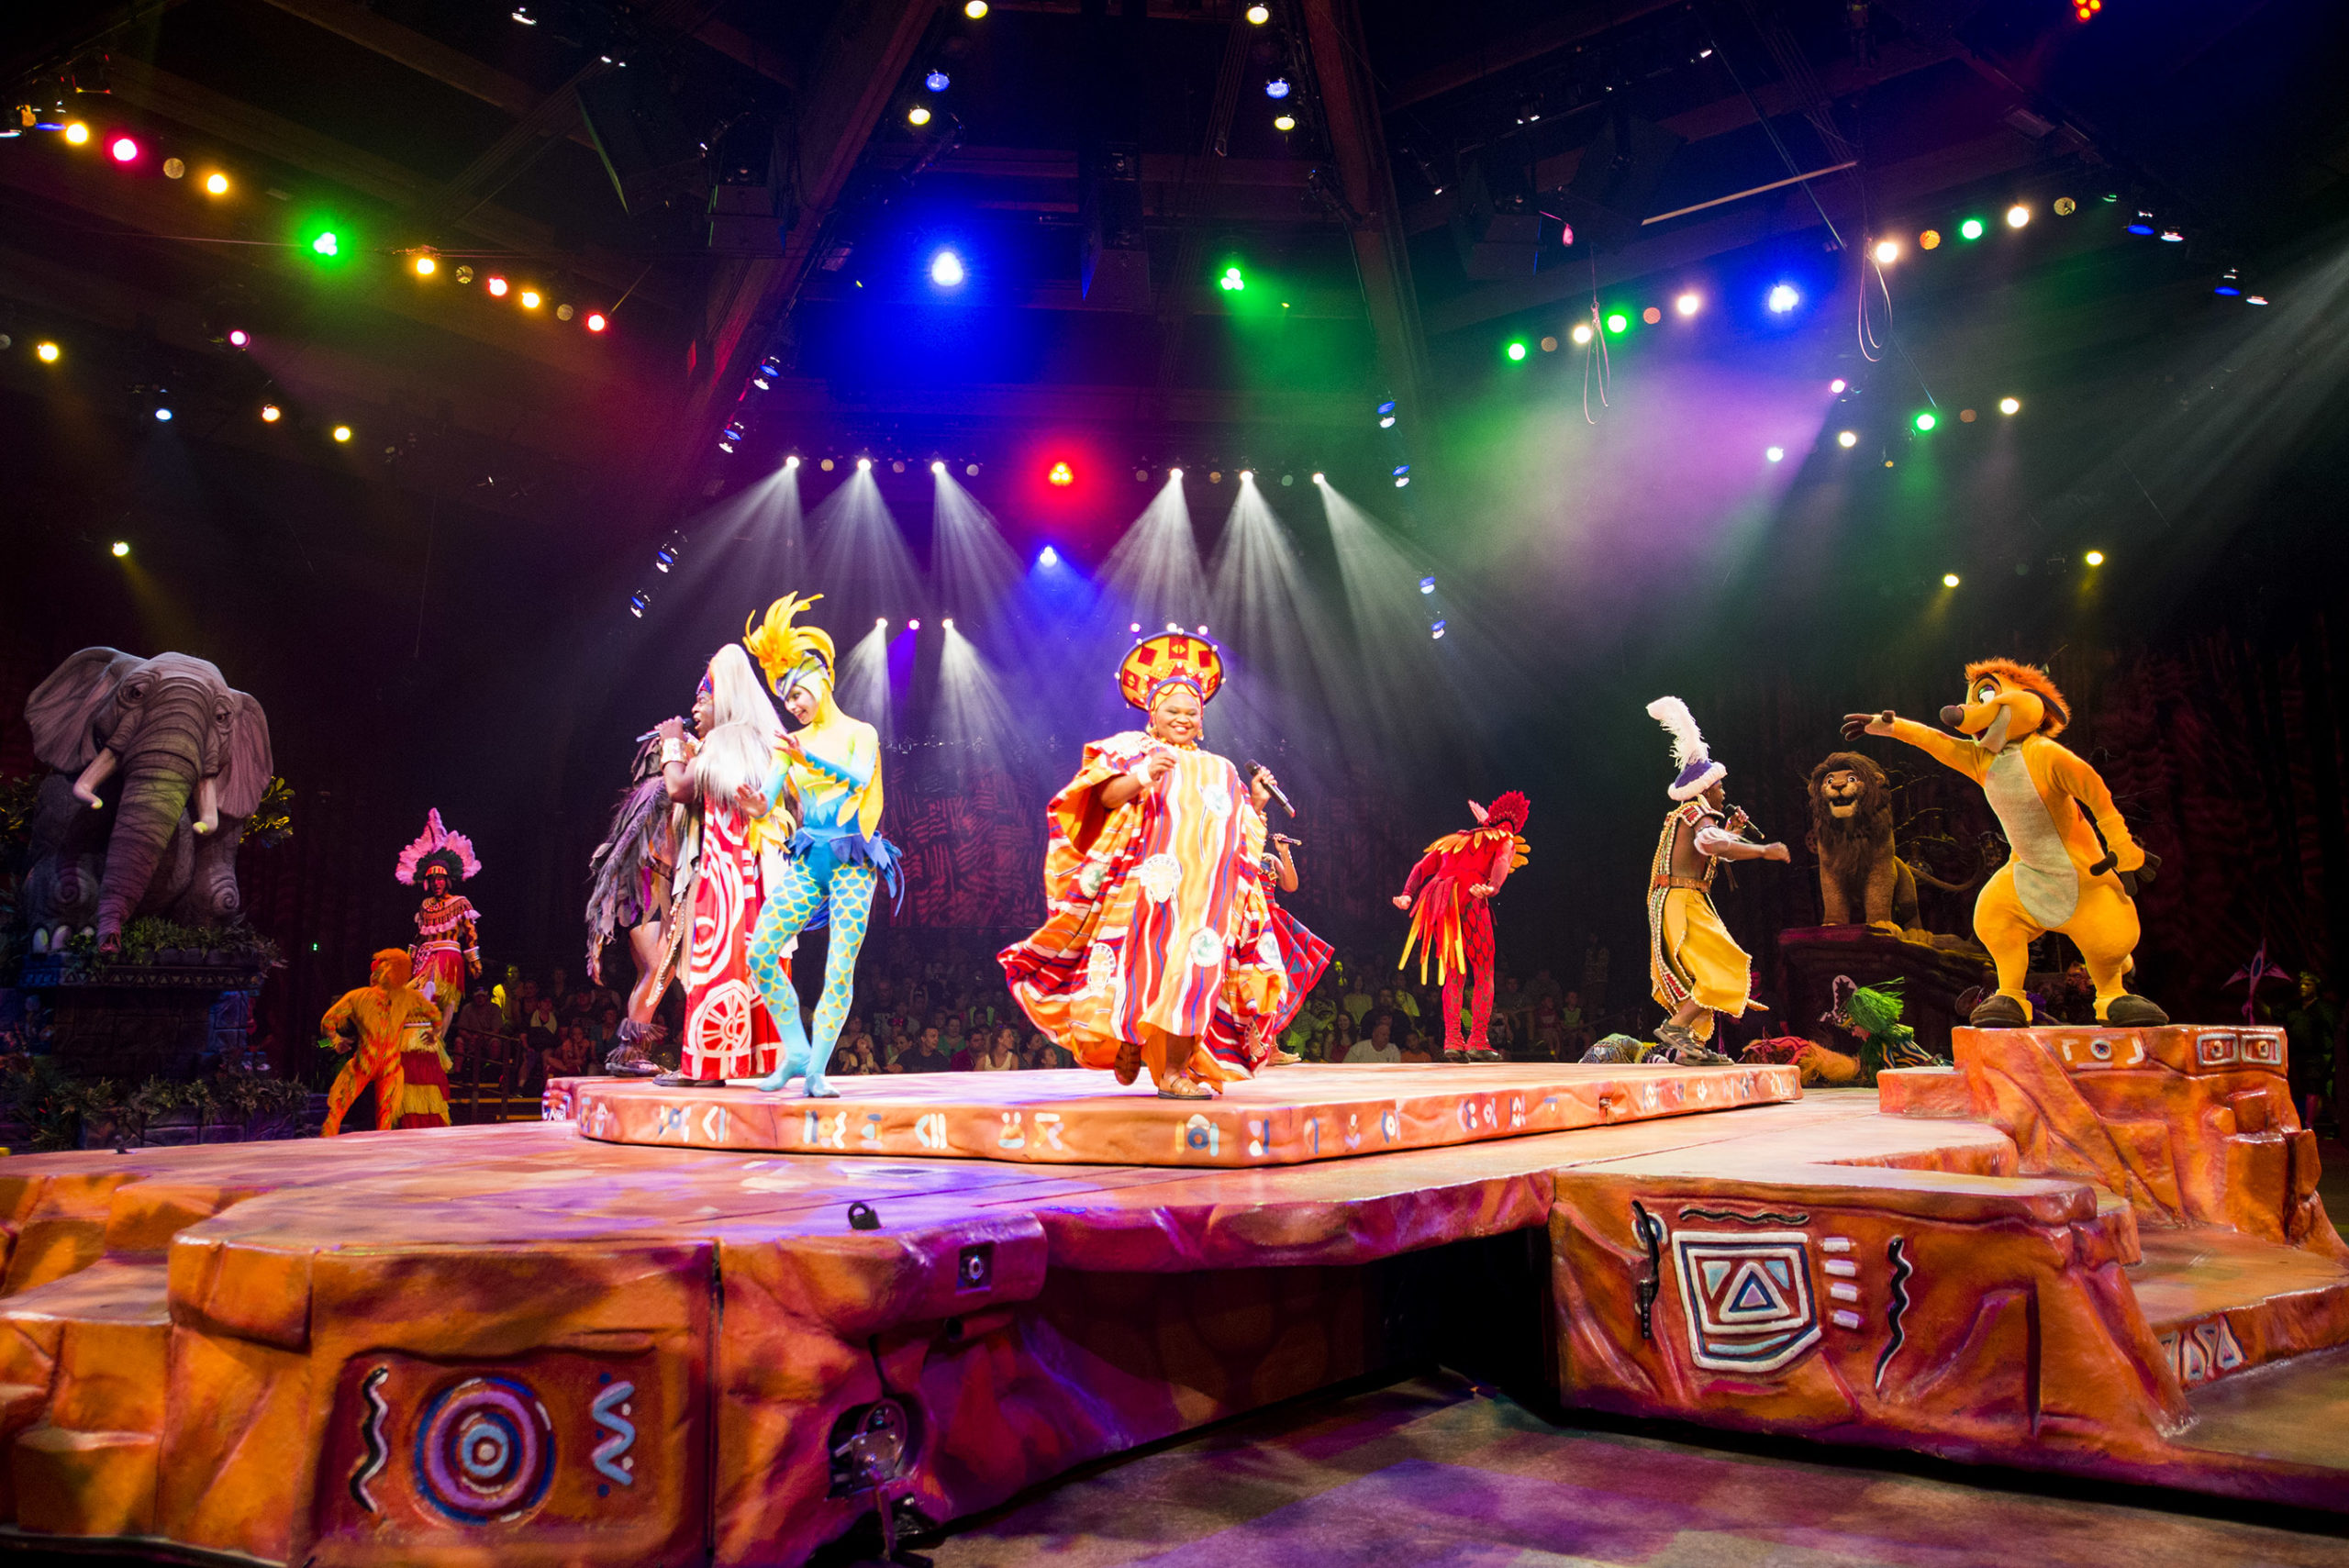 Lion King show at Disney's Animal Kingdom